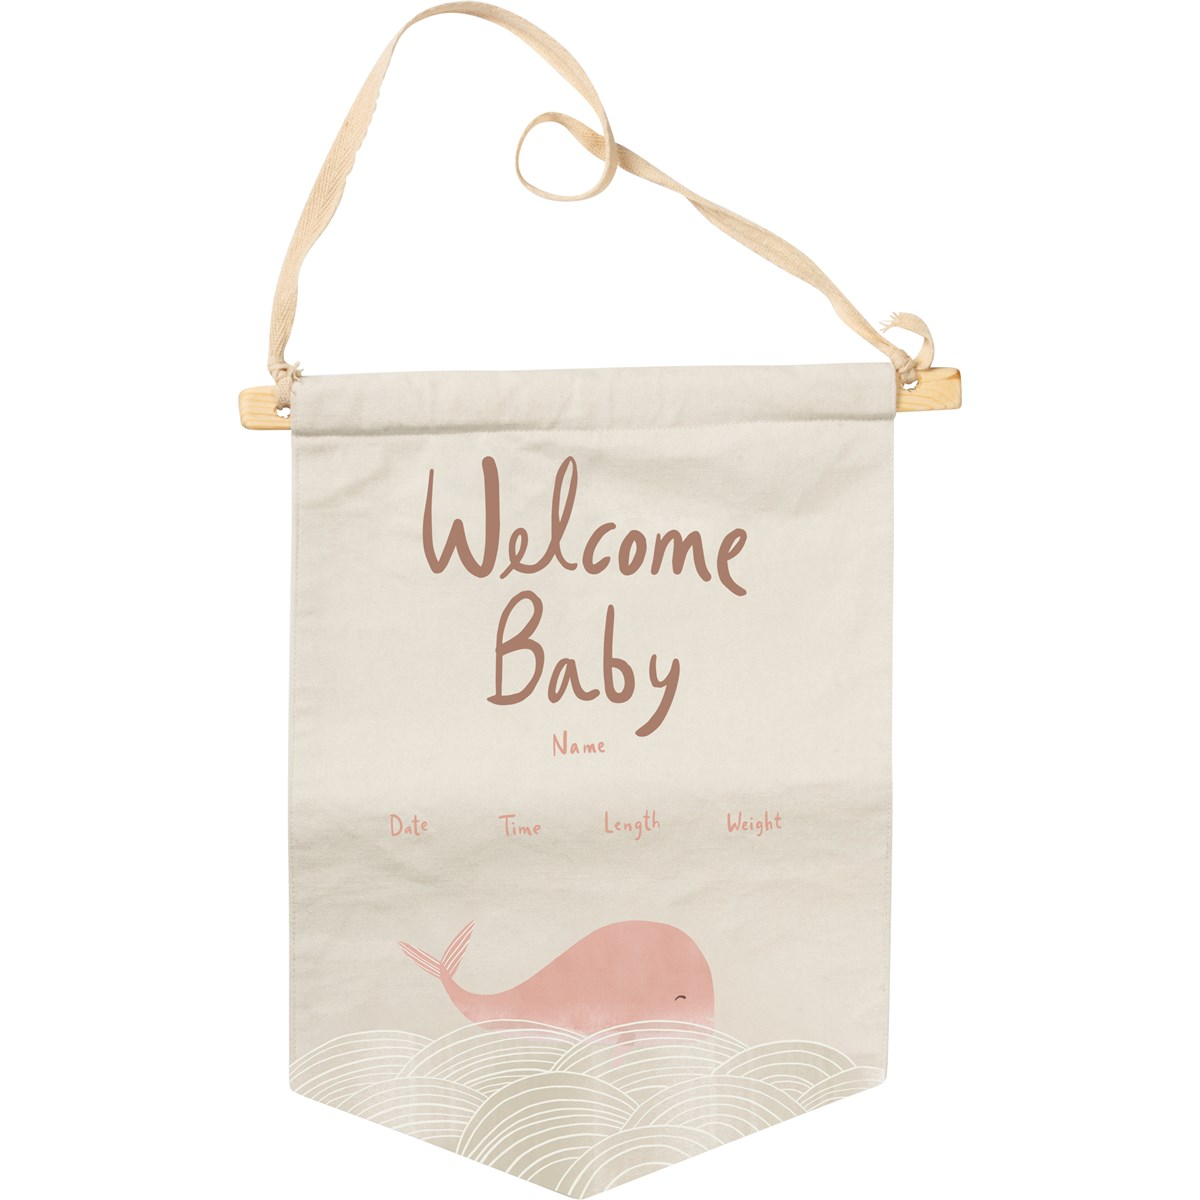 "Banner - Welcome Baby Pink - 10"" x 14"" - Cotton, Wood"